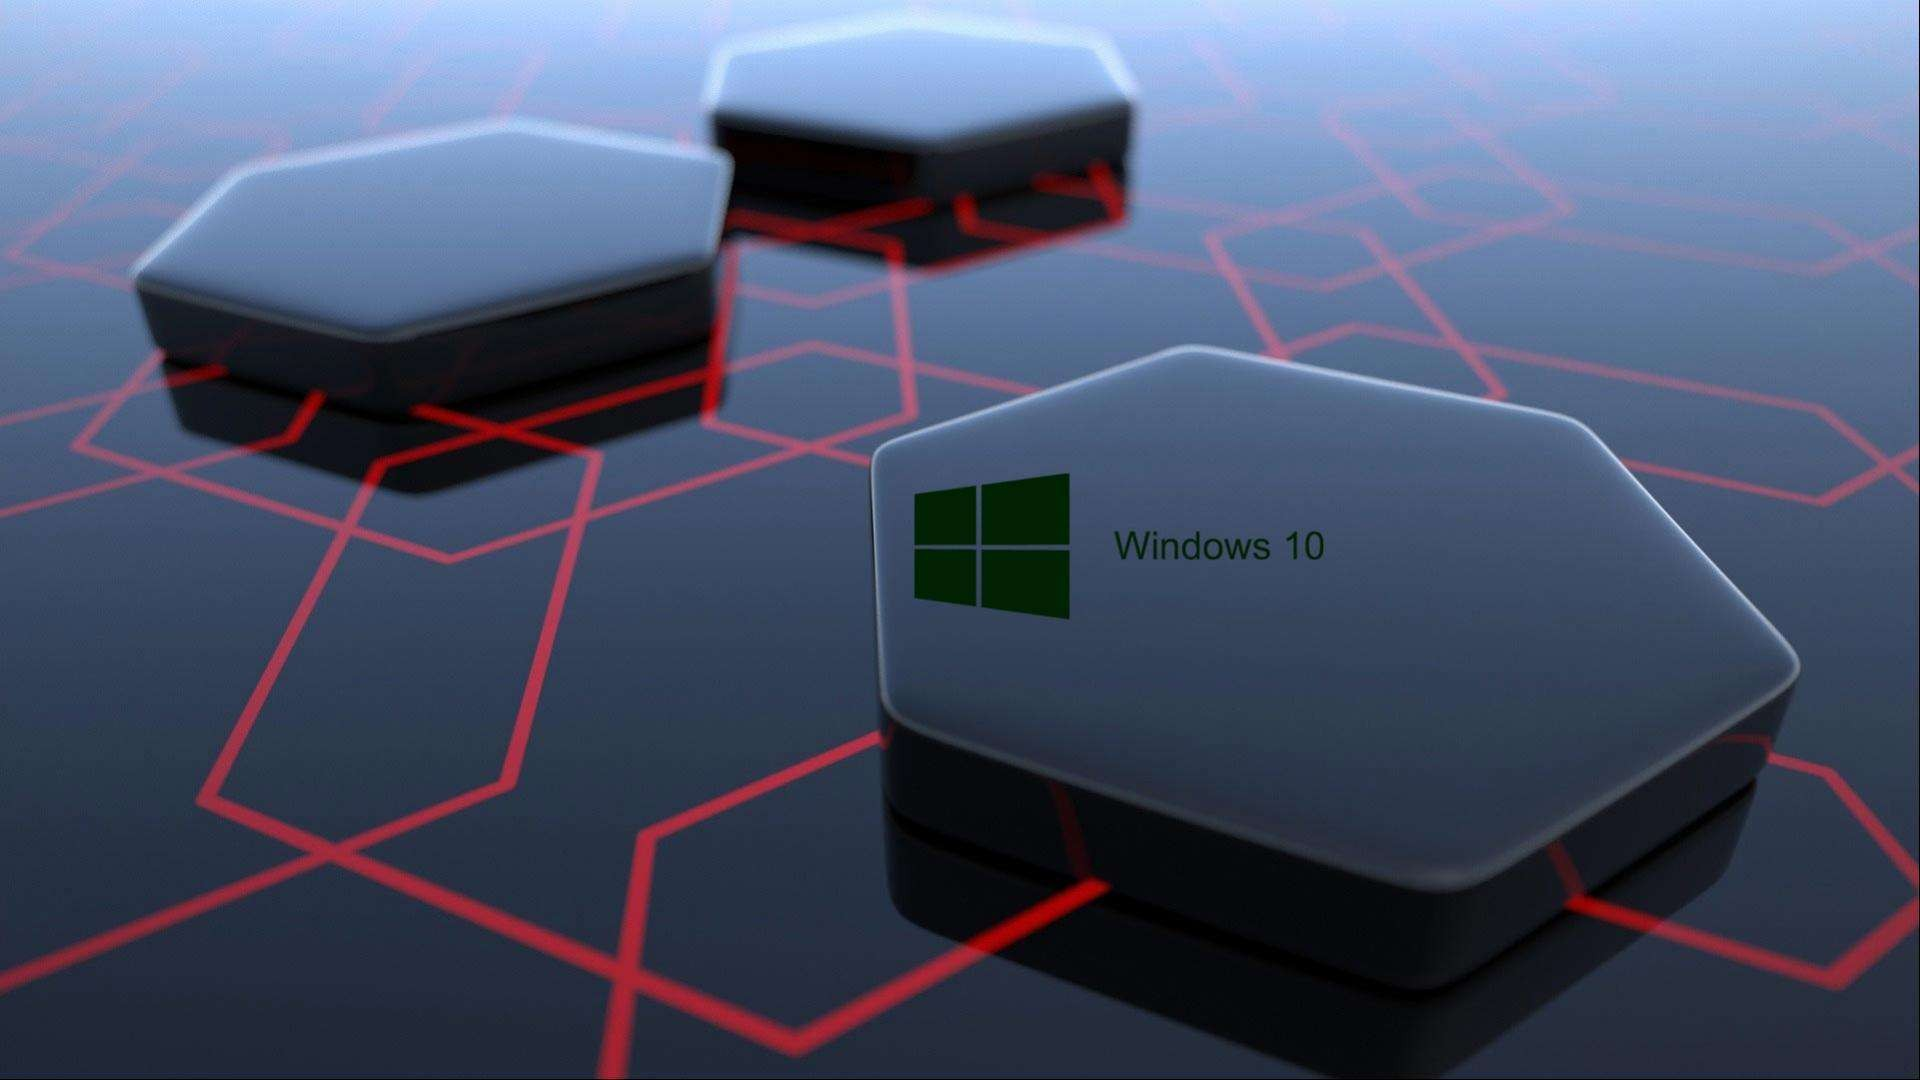 Windows 10 Hd Wallpaper ① Download Free Amazing Backgrounds For